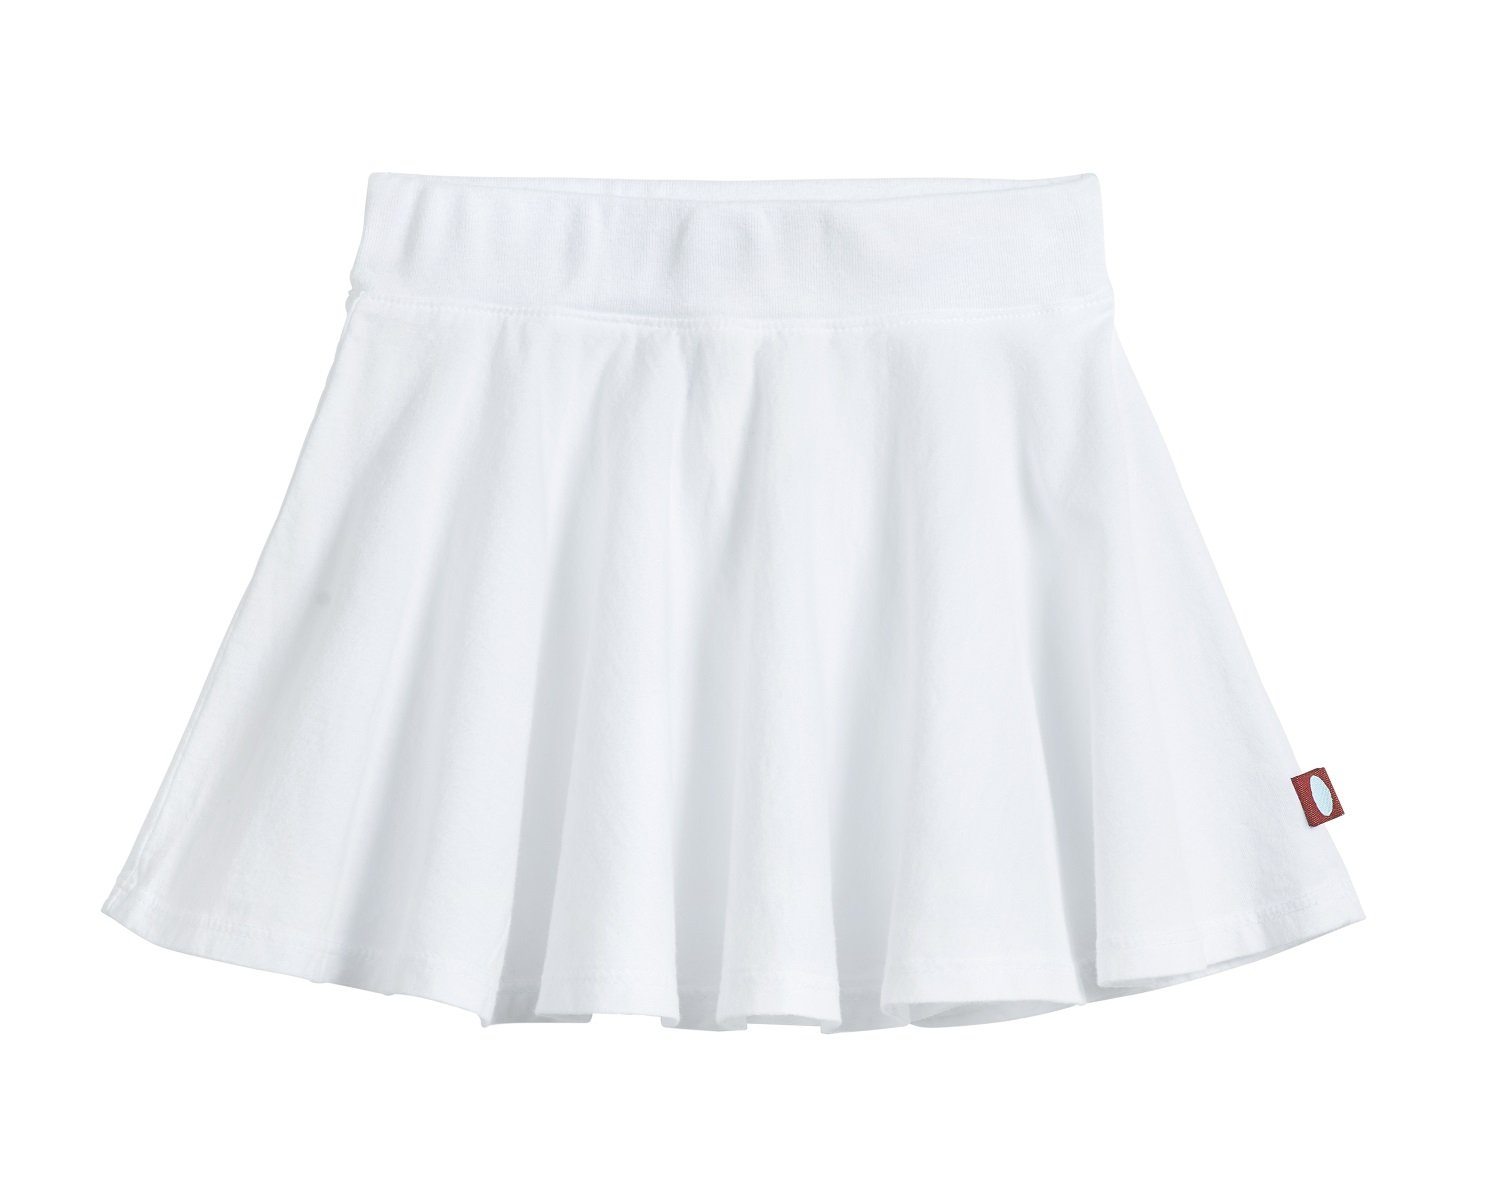 City Threads Big Girls' Cotton Twirly Skirt Perfect For Sensitive Skin/SPD/Sensory Friendly For School or Play Fall/Spring, White, Size 16